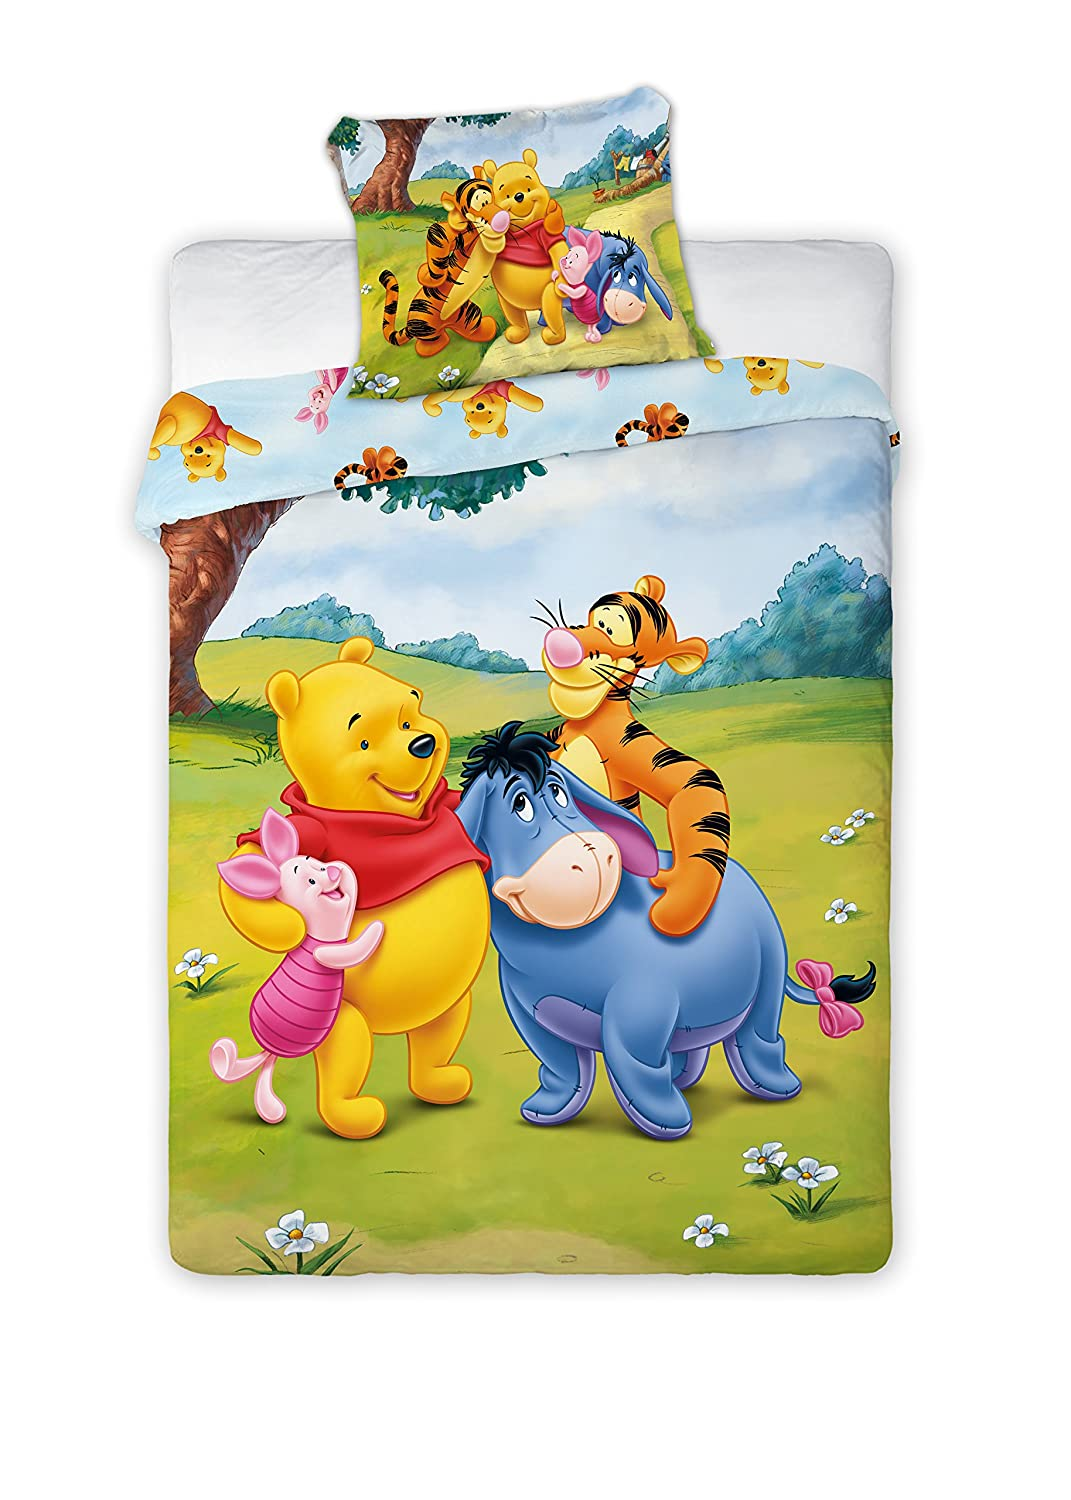 Children's bed linen, with Disney Winnie the Pooh motif, 2-piece set, 100 x 135 cm and 40 x 60 cm Children's bed linen TFBBK